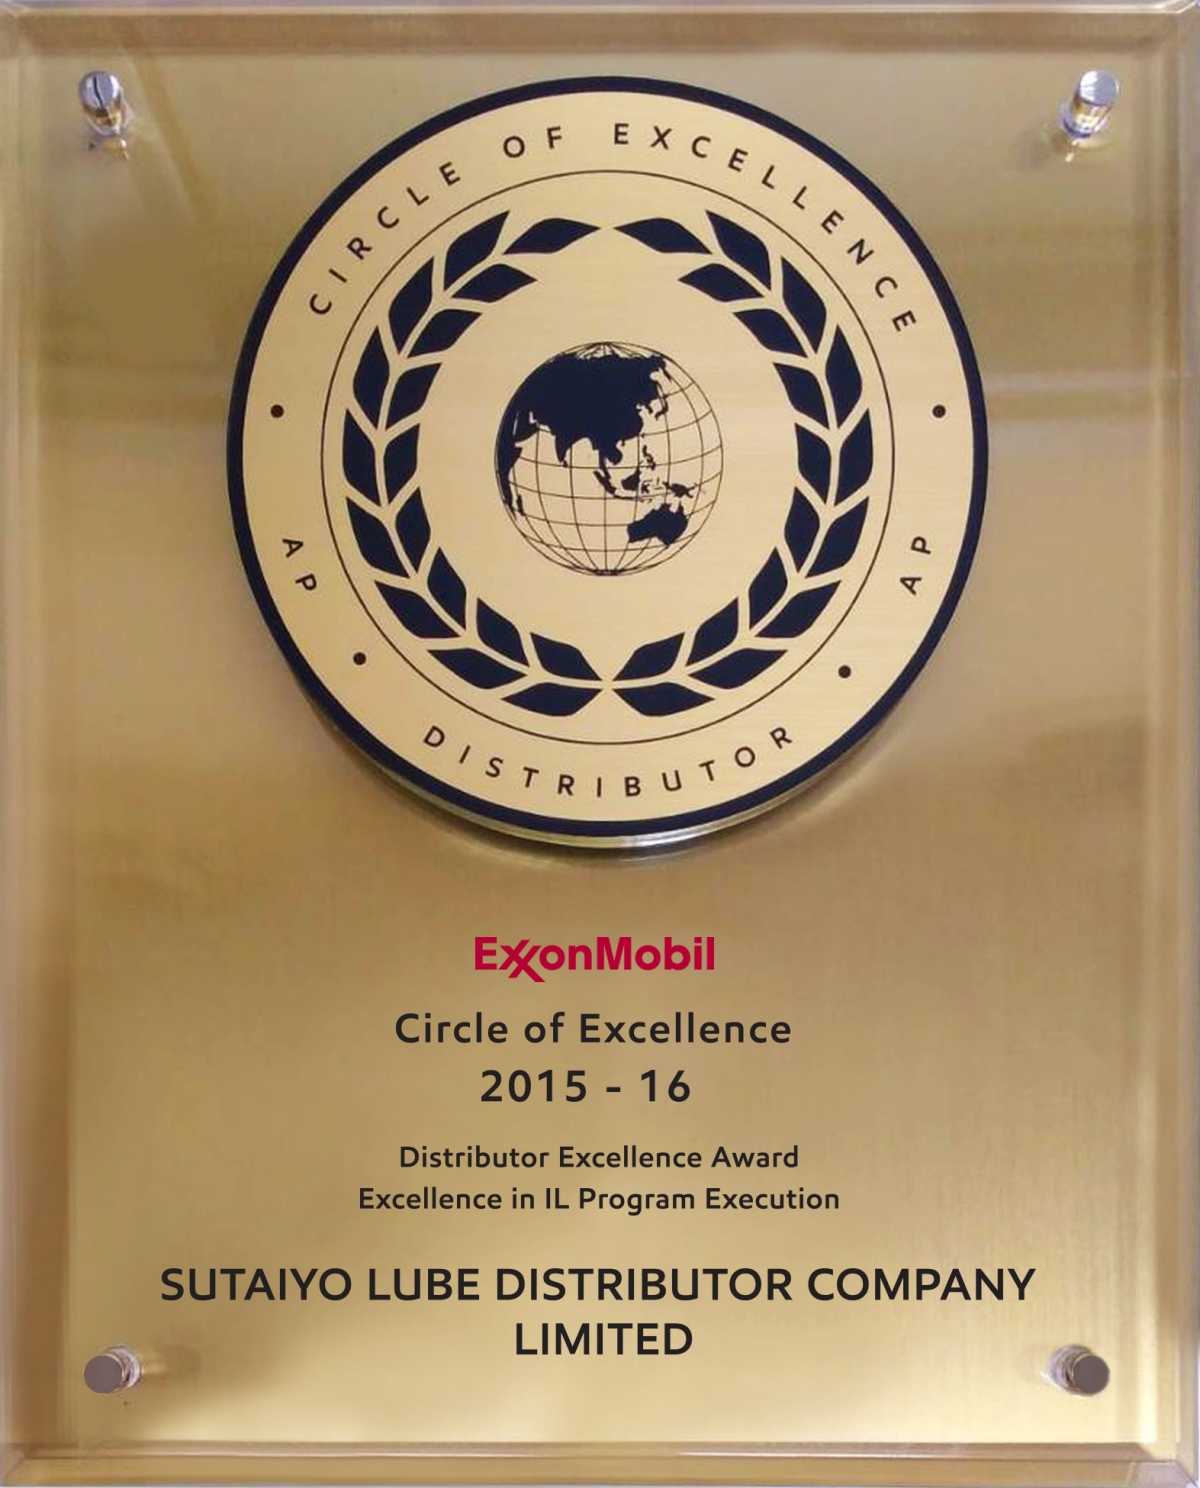 Circle of Excellence Award : Gold Winner 2015-16 IL Execution Program